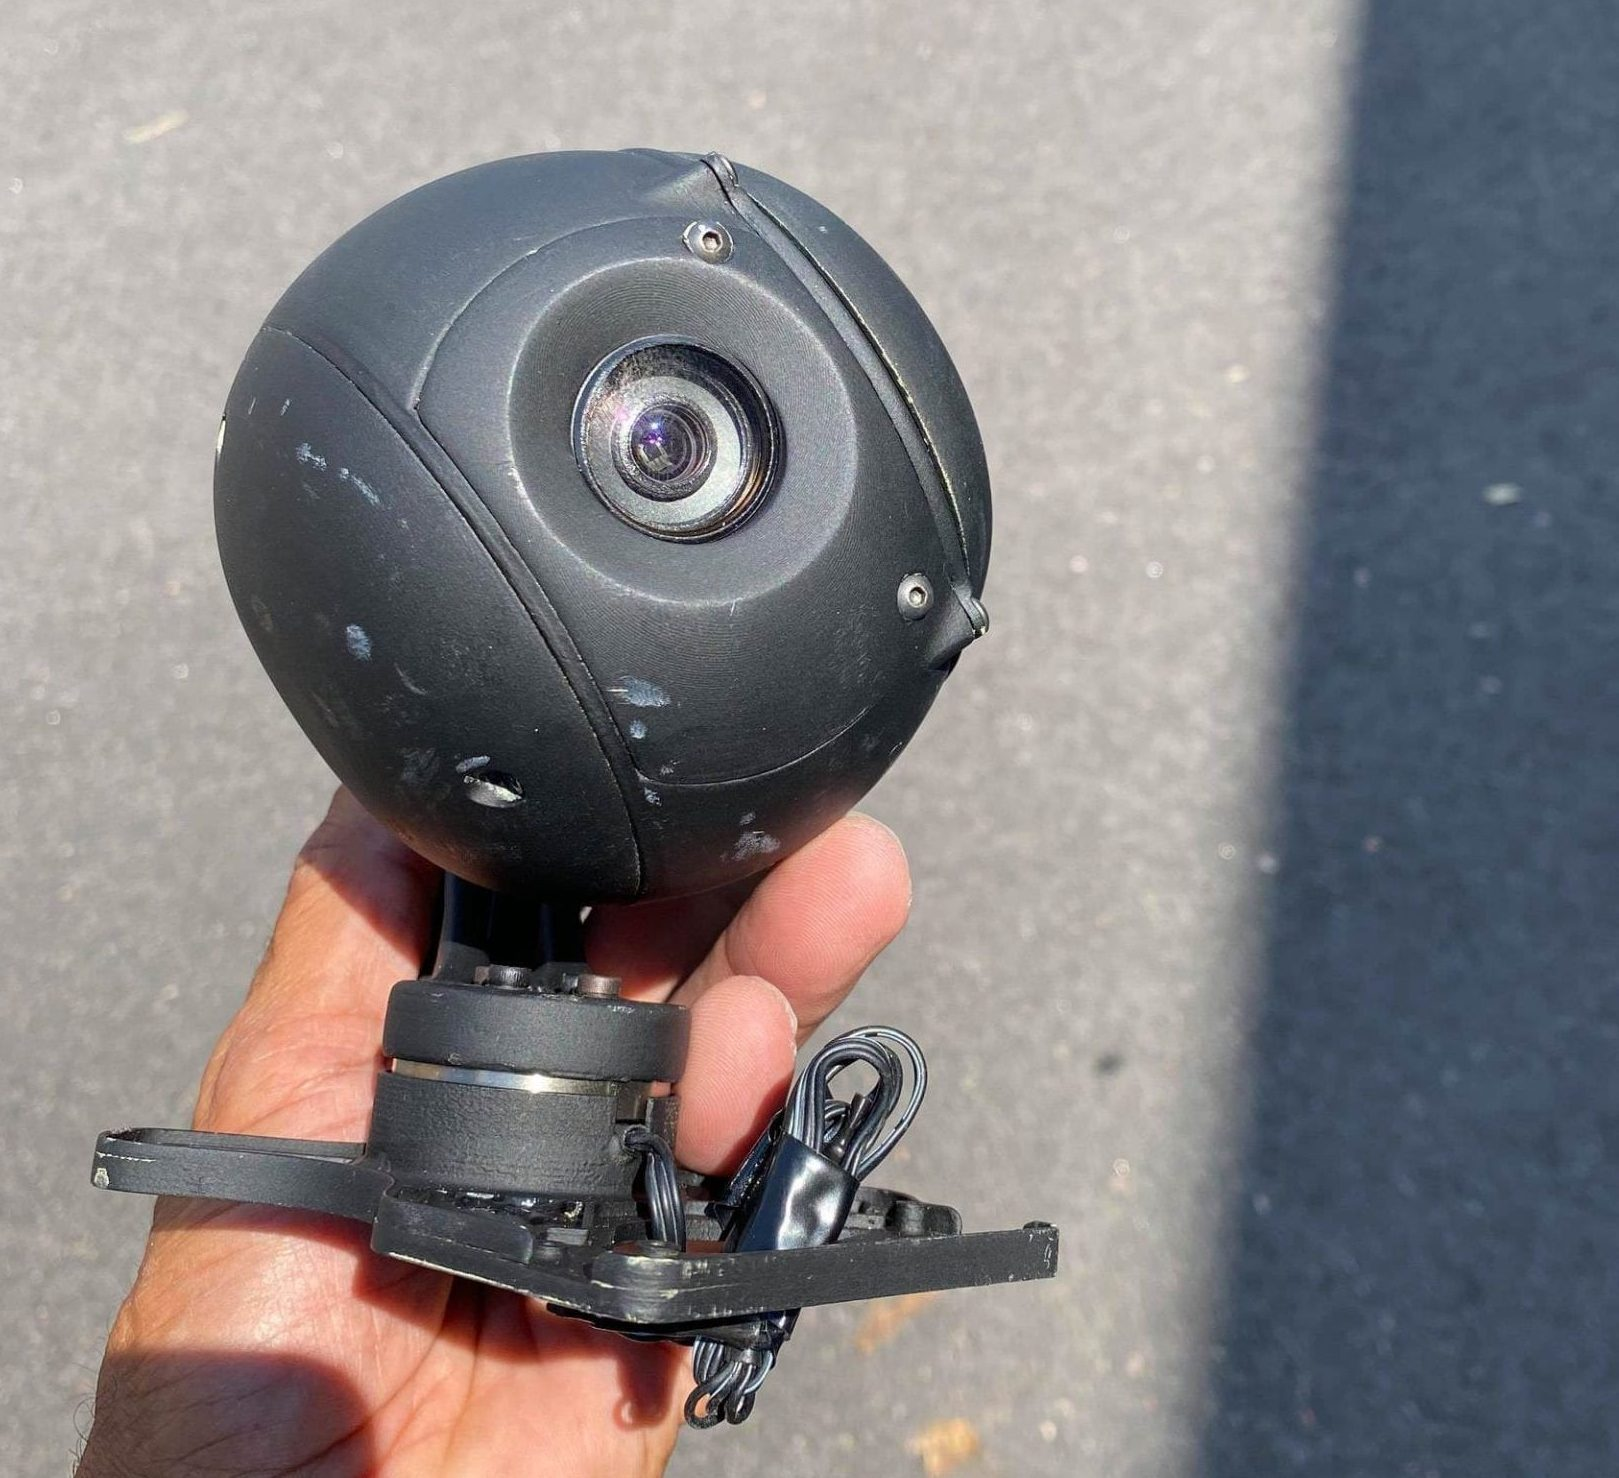 18x zoom camera gimbal Bielik drone from Poland